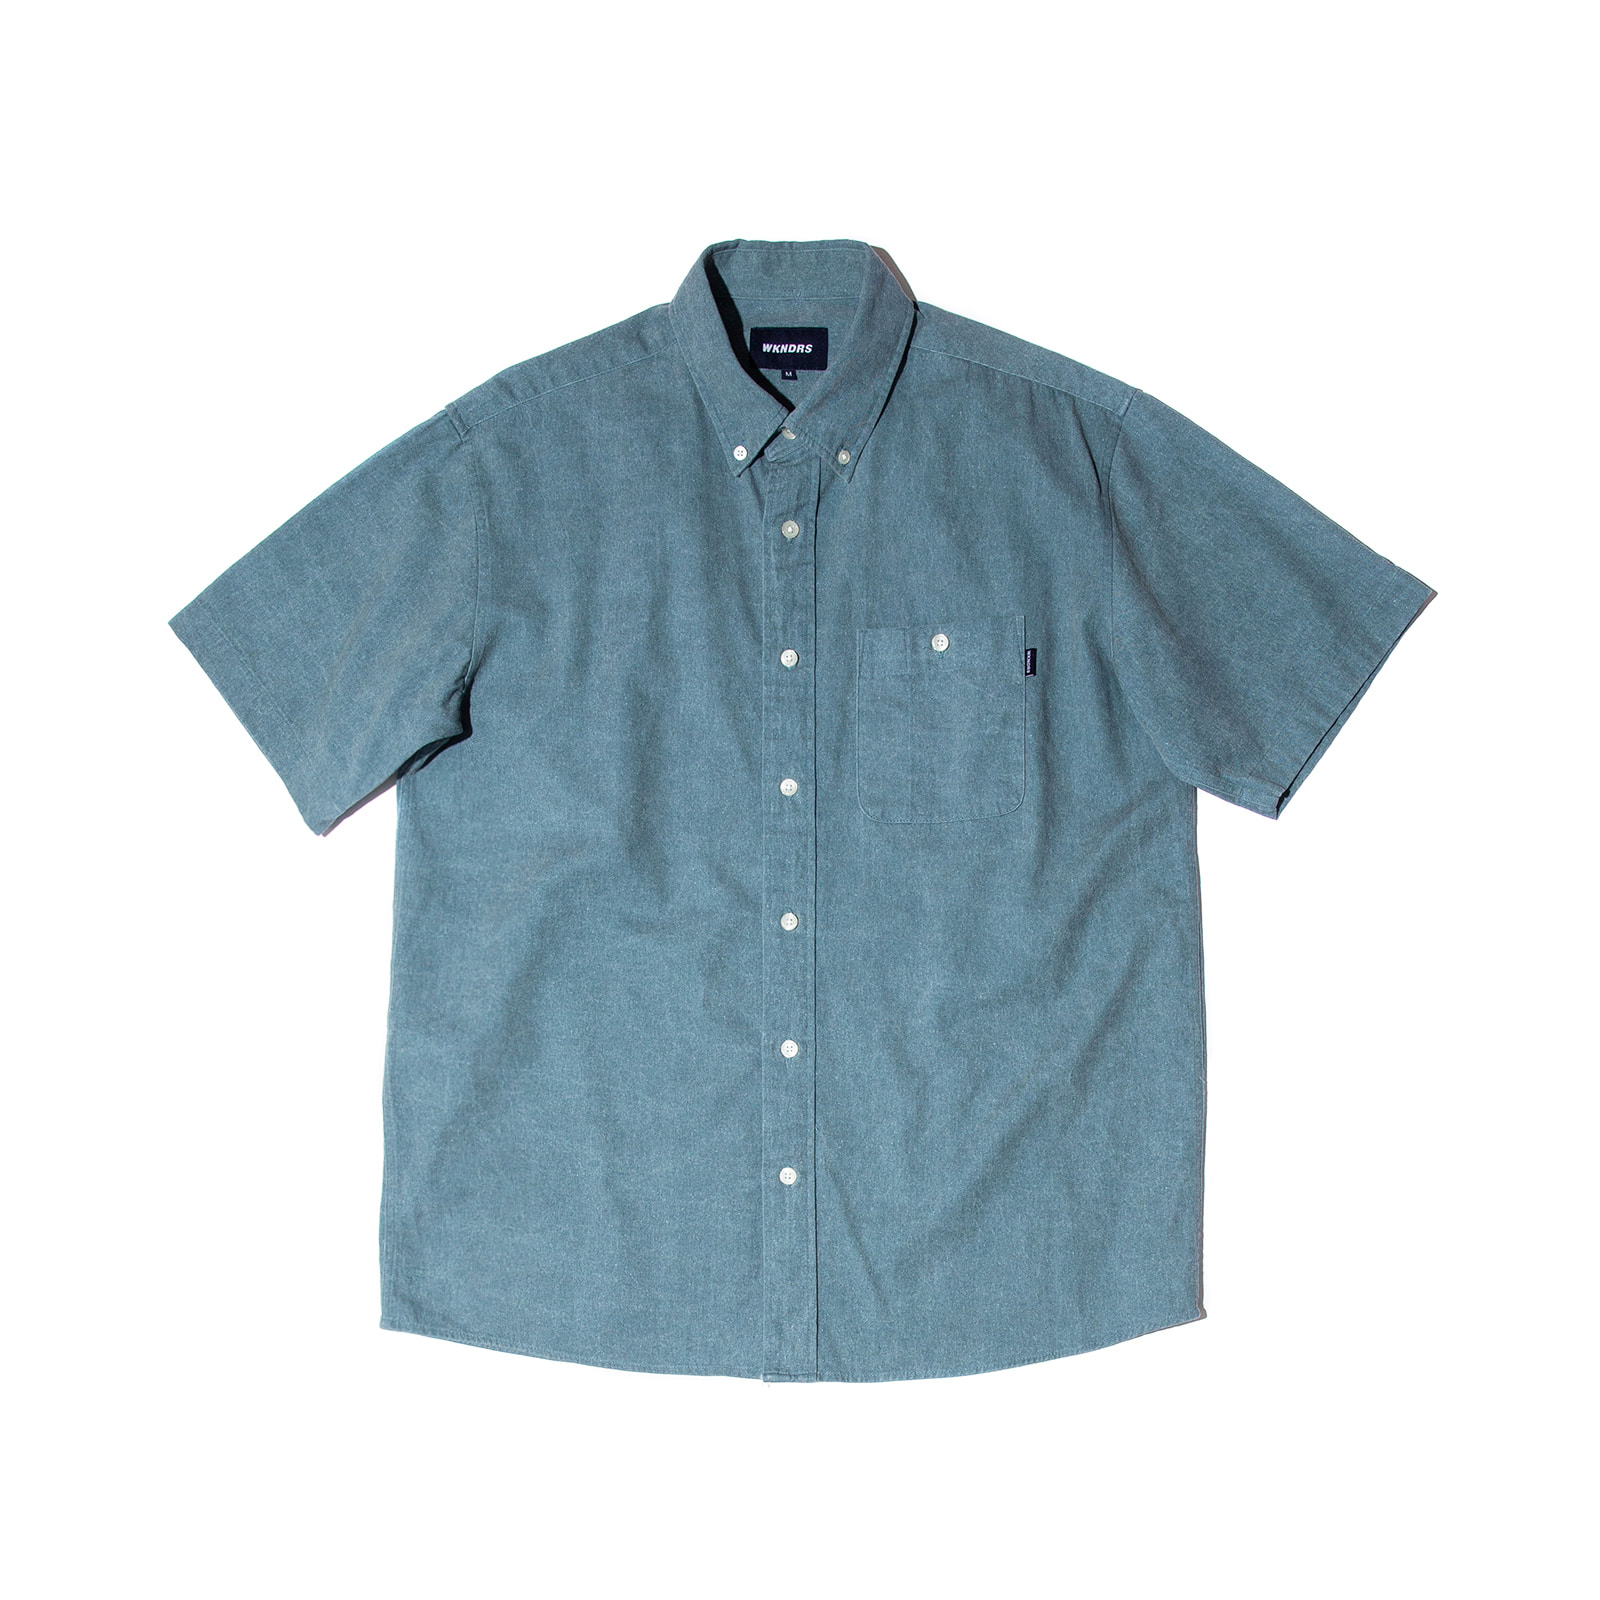 BASIC SHORTS SLEEVE SHIRTS (S.BLUE)